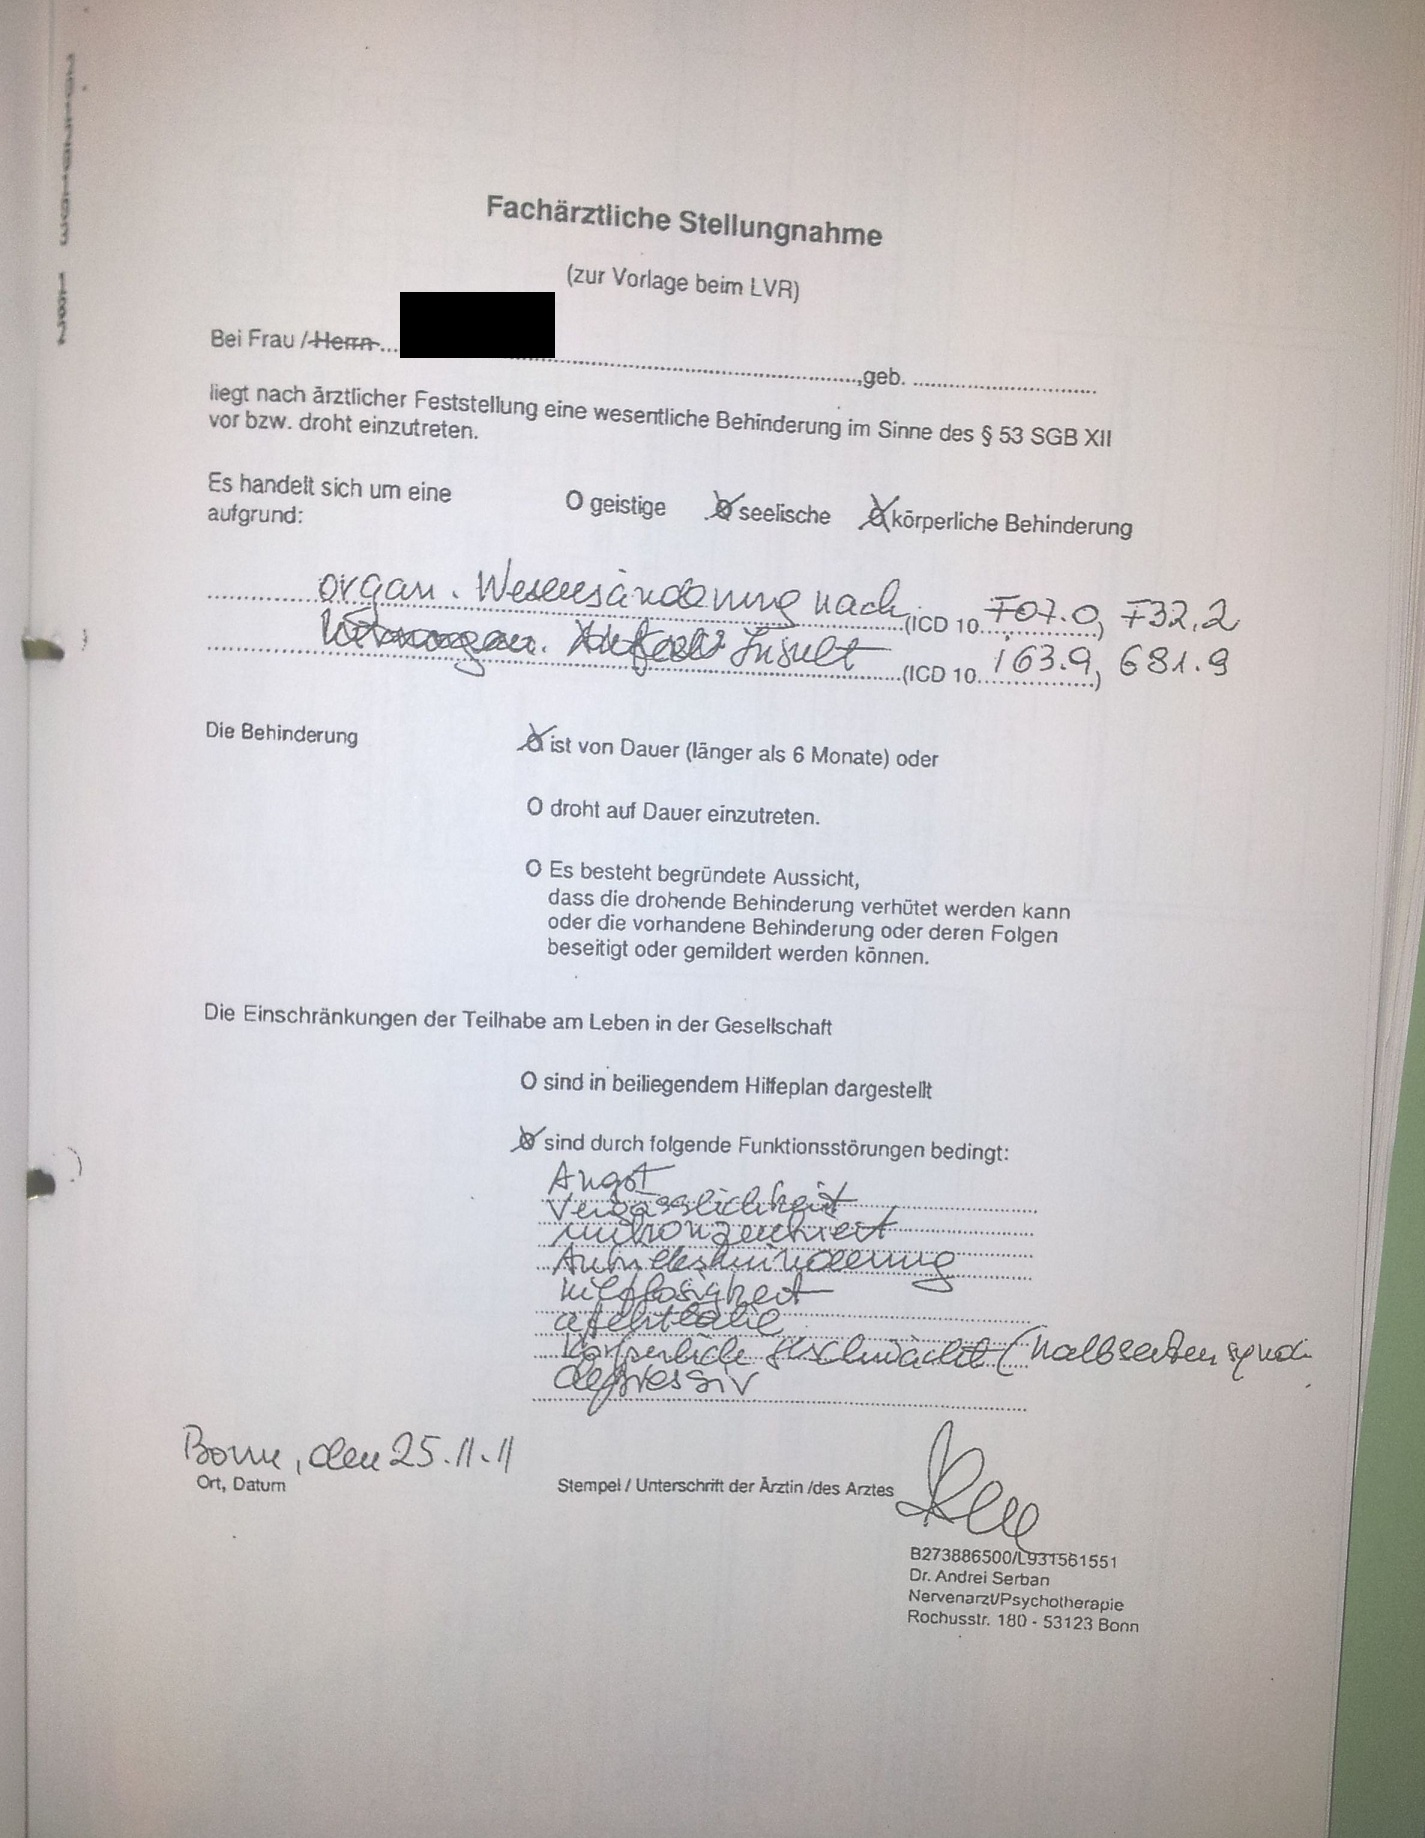 Familie Schlaganfall Papa-Tochter